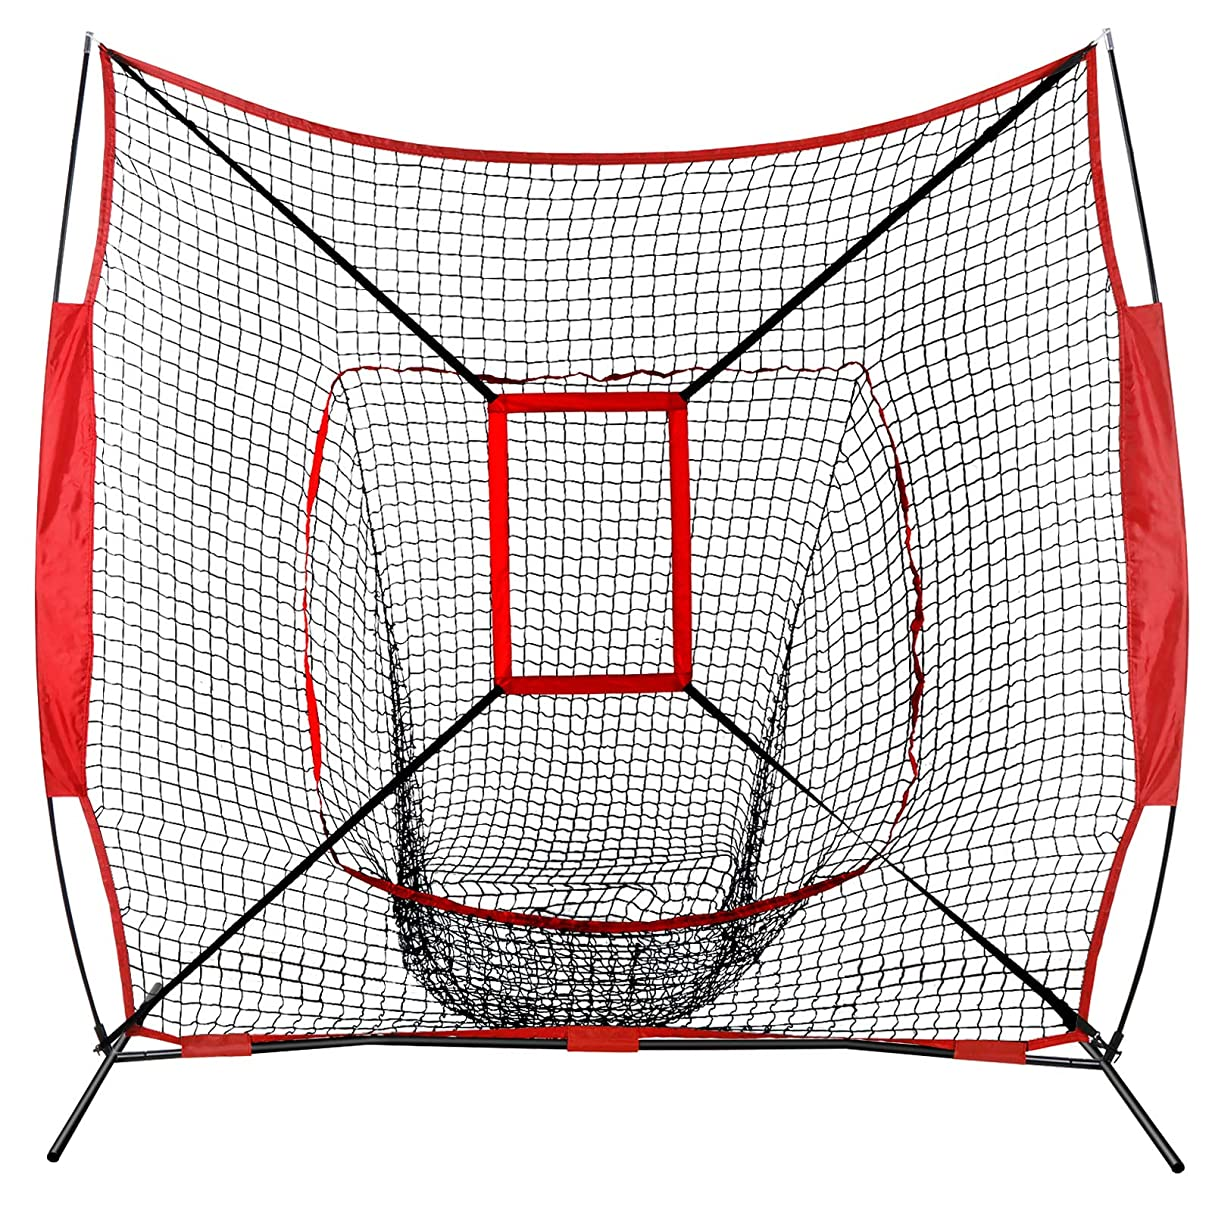 JupiterForce 7' x 7' Baseball Softball Practice Hitting Pitching Net with Bow Frame,Carry Bag,Great for All Skill Levels